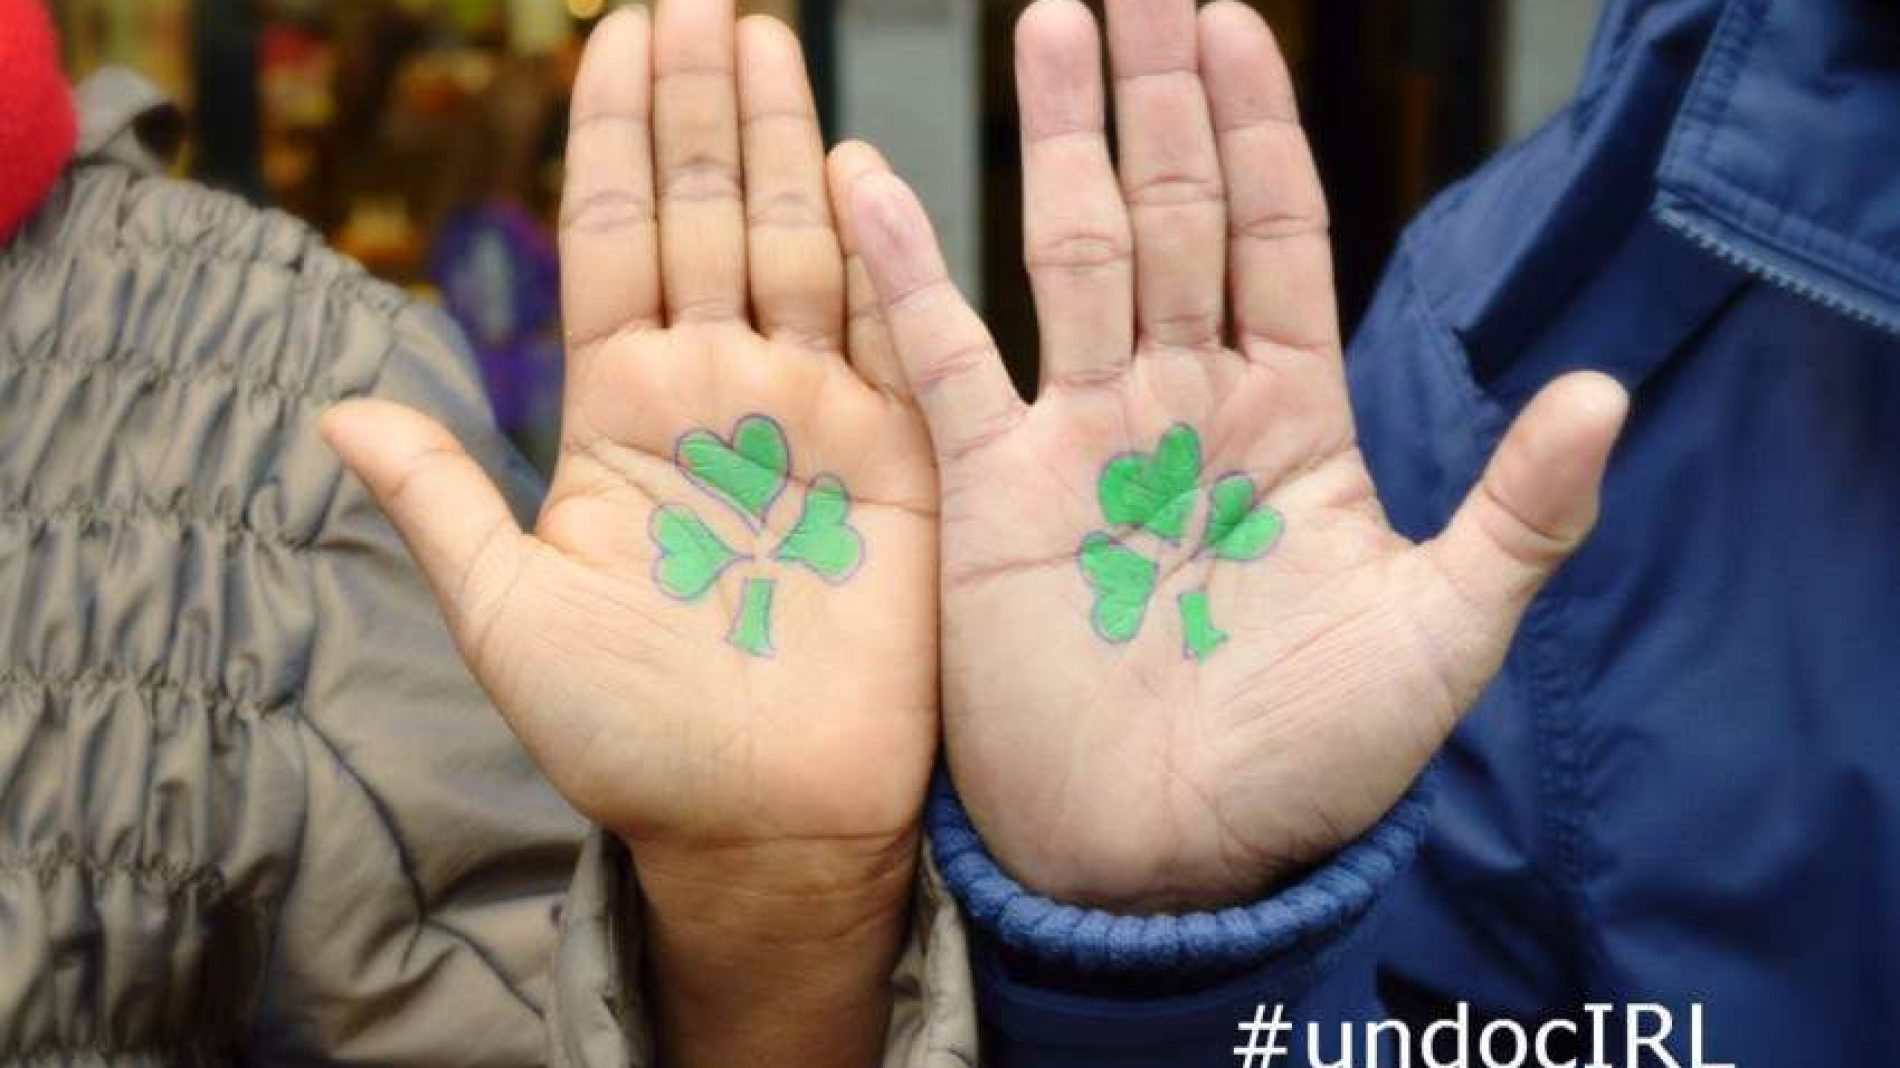 Two hands with shamrocks printed on them